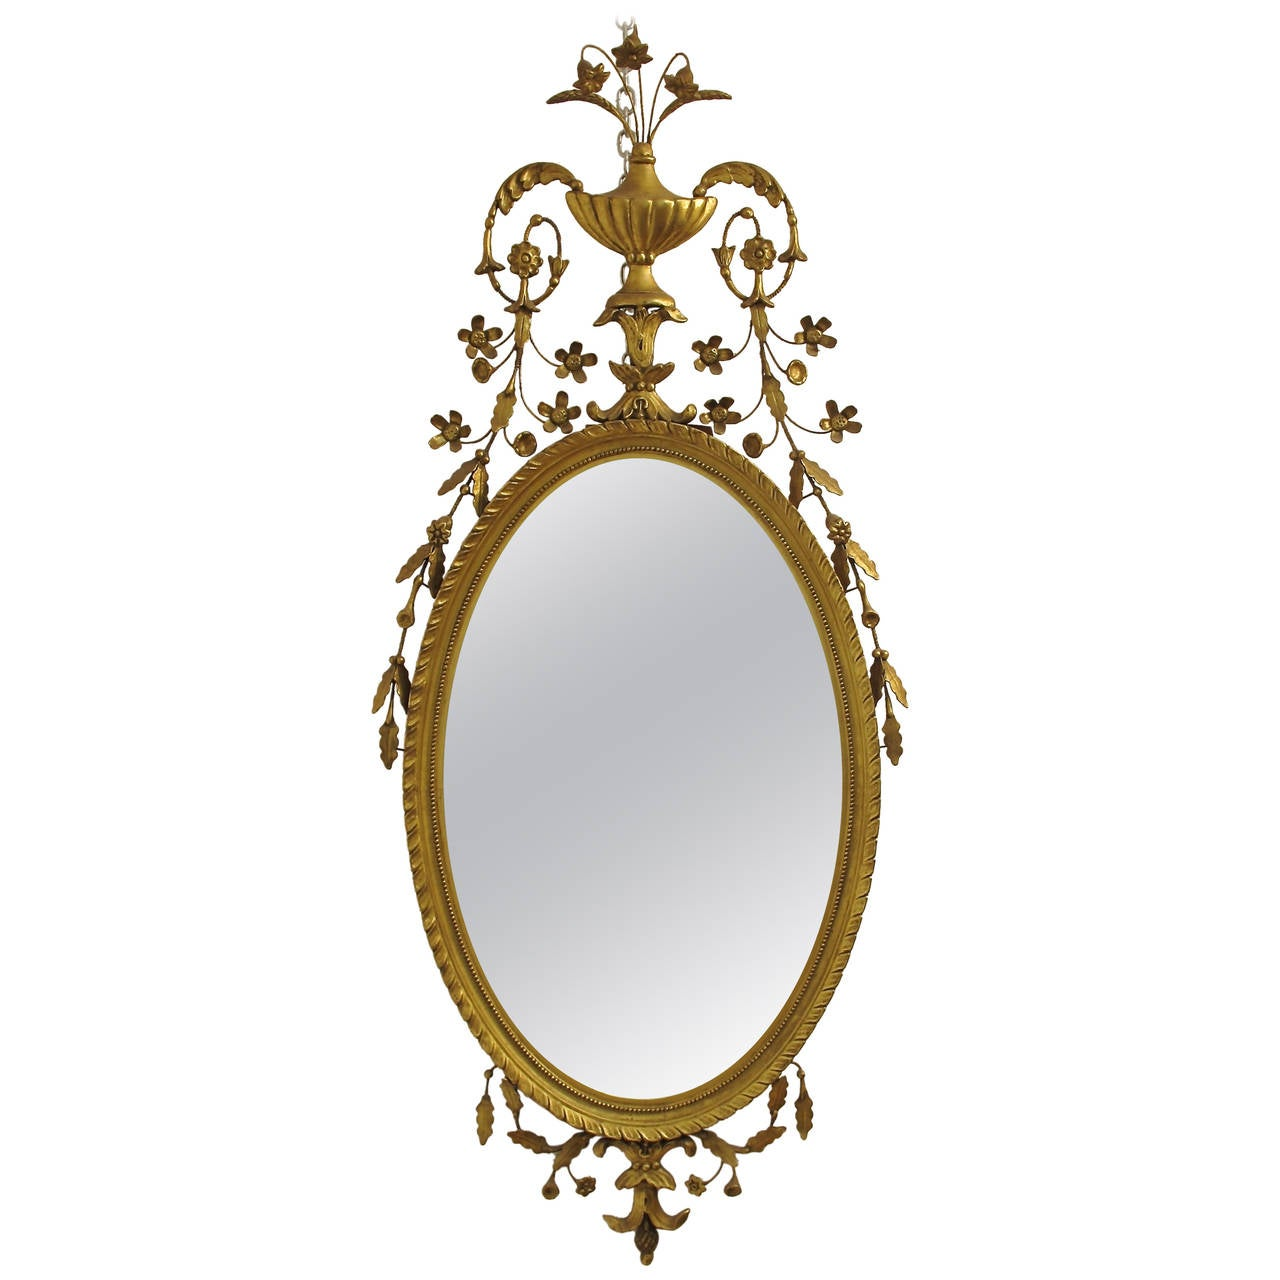 Adams style gilt carved and floral leaf embellished mirror for Adam style mirror